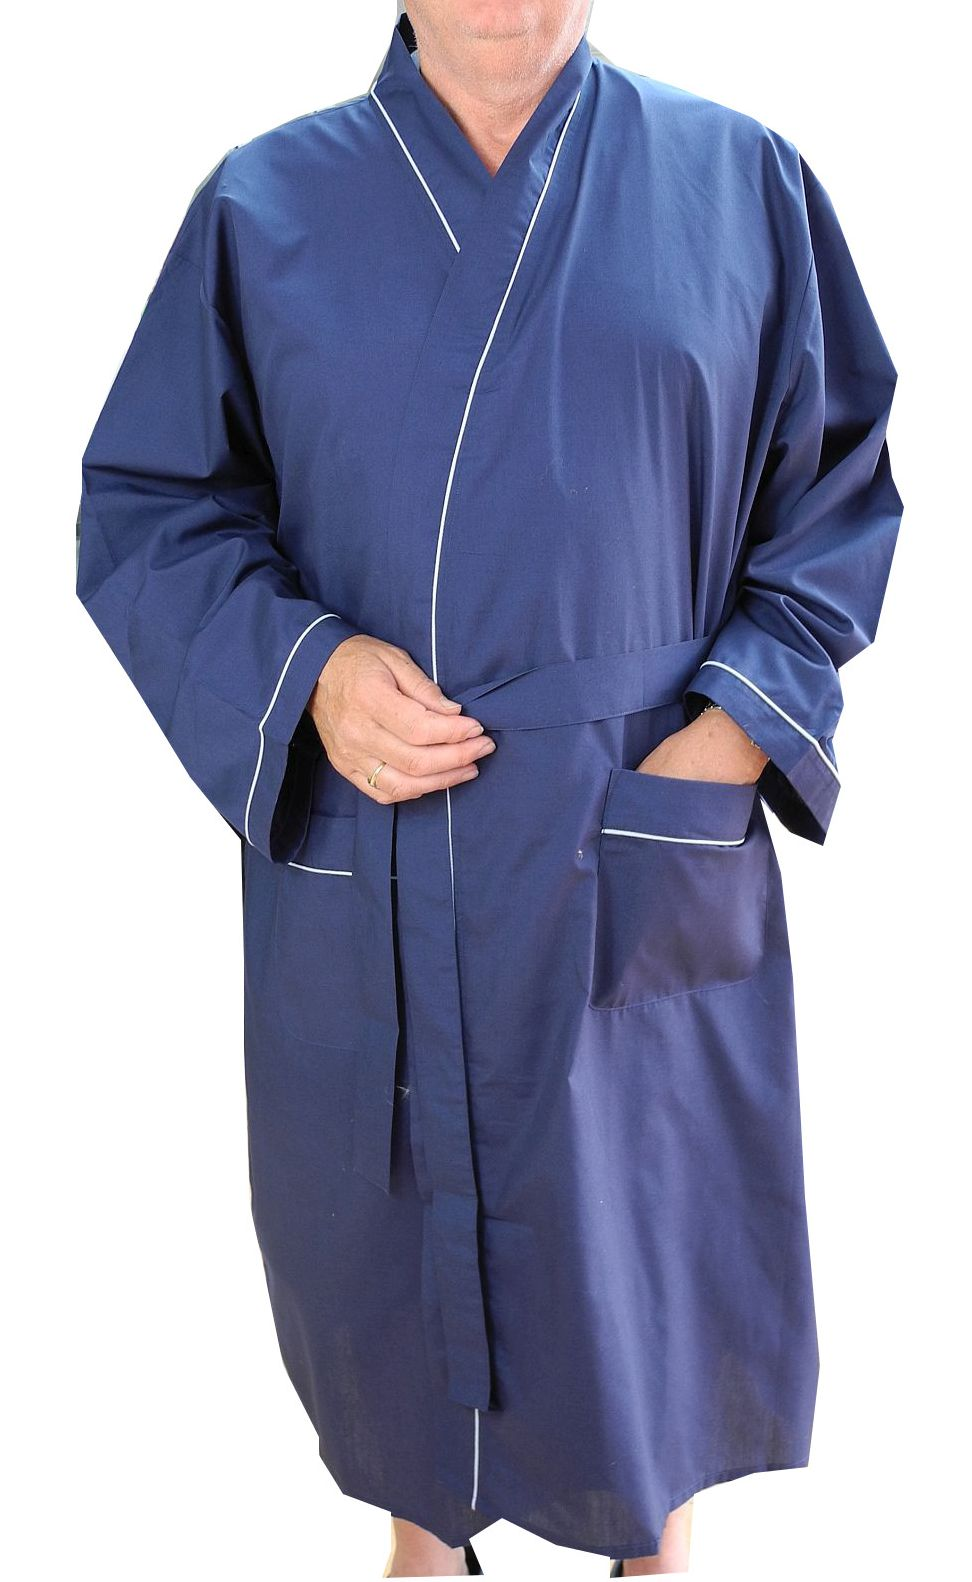 Aibrou Unisex Waffle Dressing Gown Cotton Lightweight Bath Robe for All Seasons Spa Hotel Pool Sleepwear. £ - £ Prime. out of 5 stars Best Deals Direct UK Ladies Dressing Gown Summer Cotton Lightweight Robe. £ - £ Prime. out of 5 stars